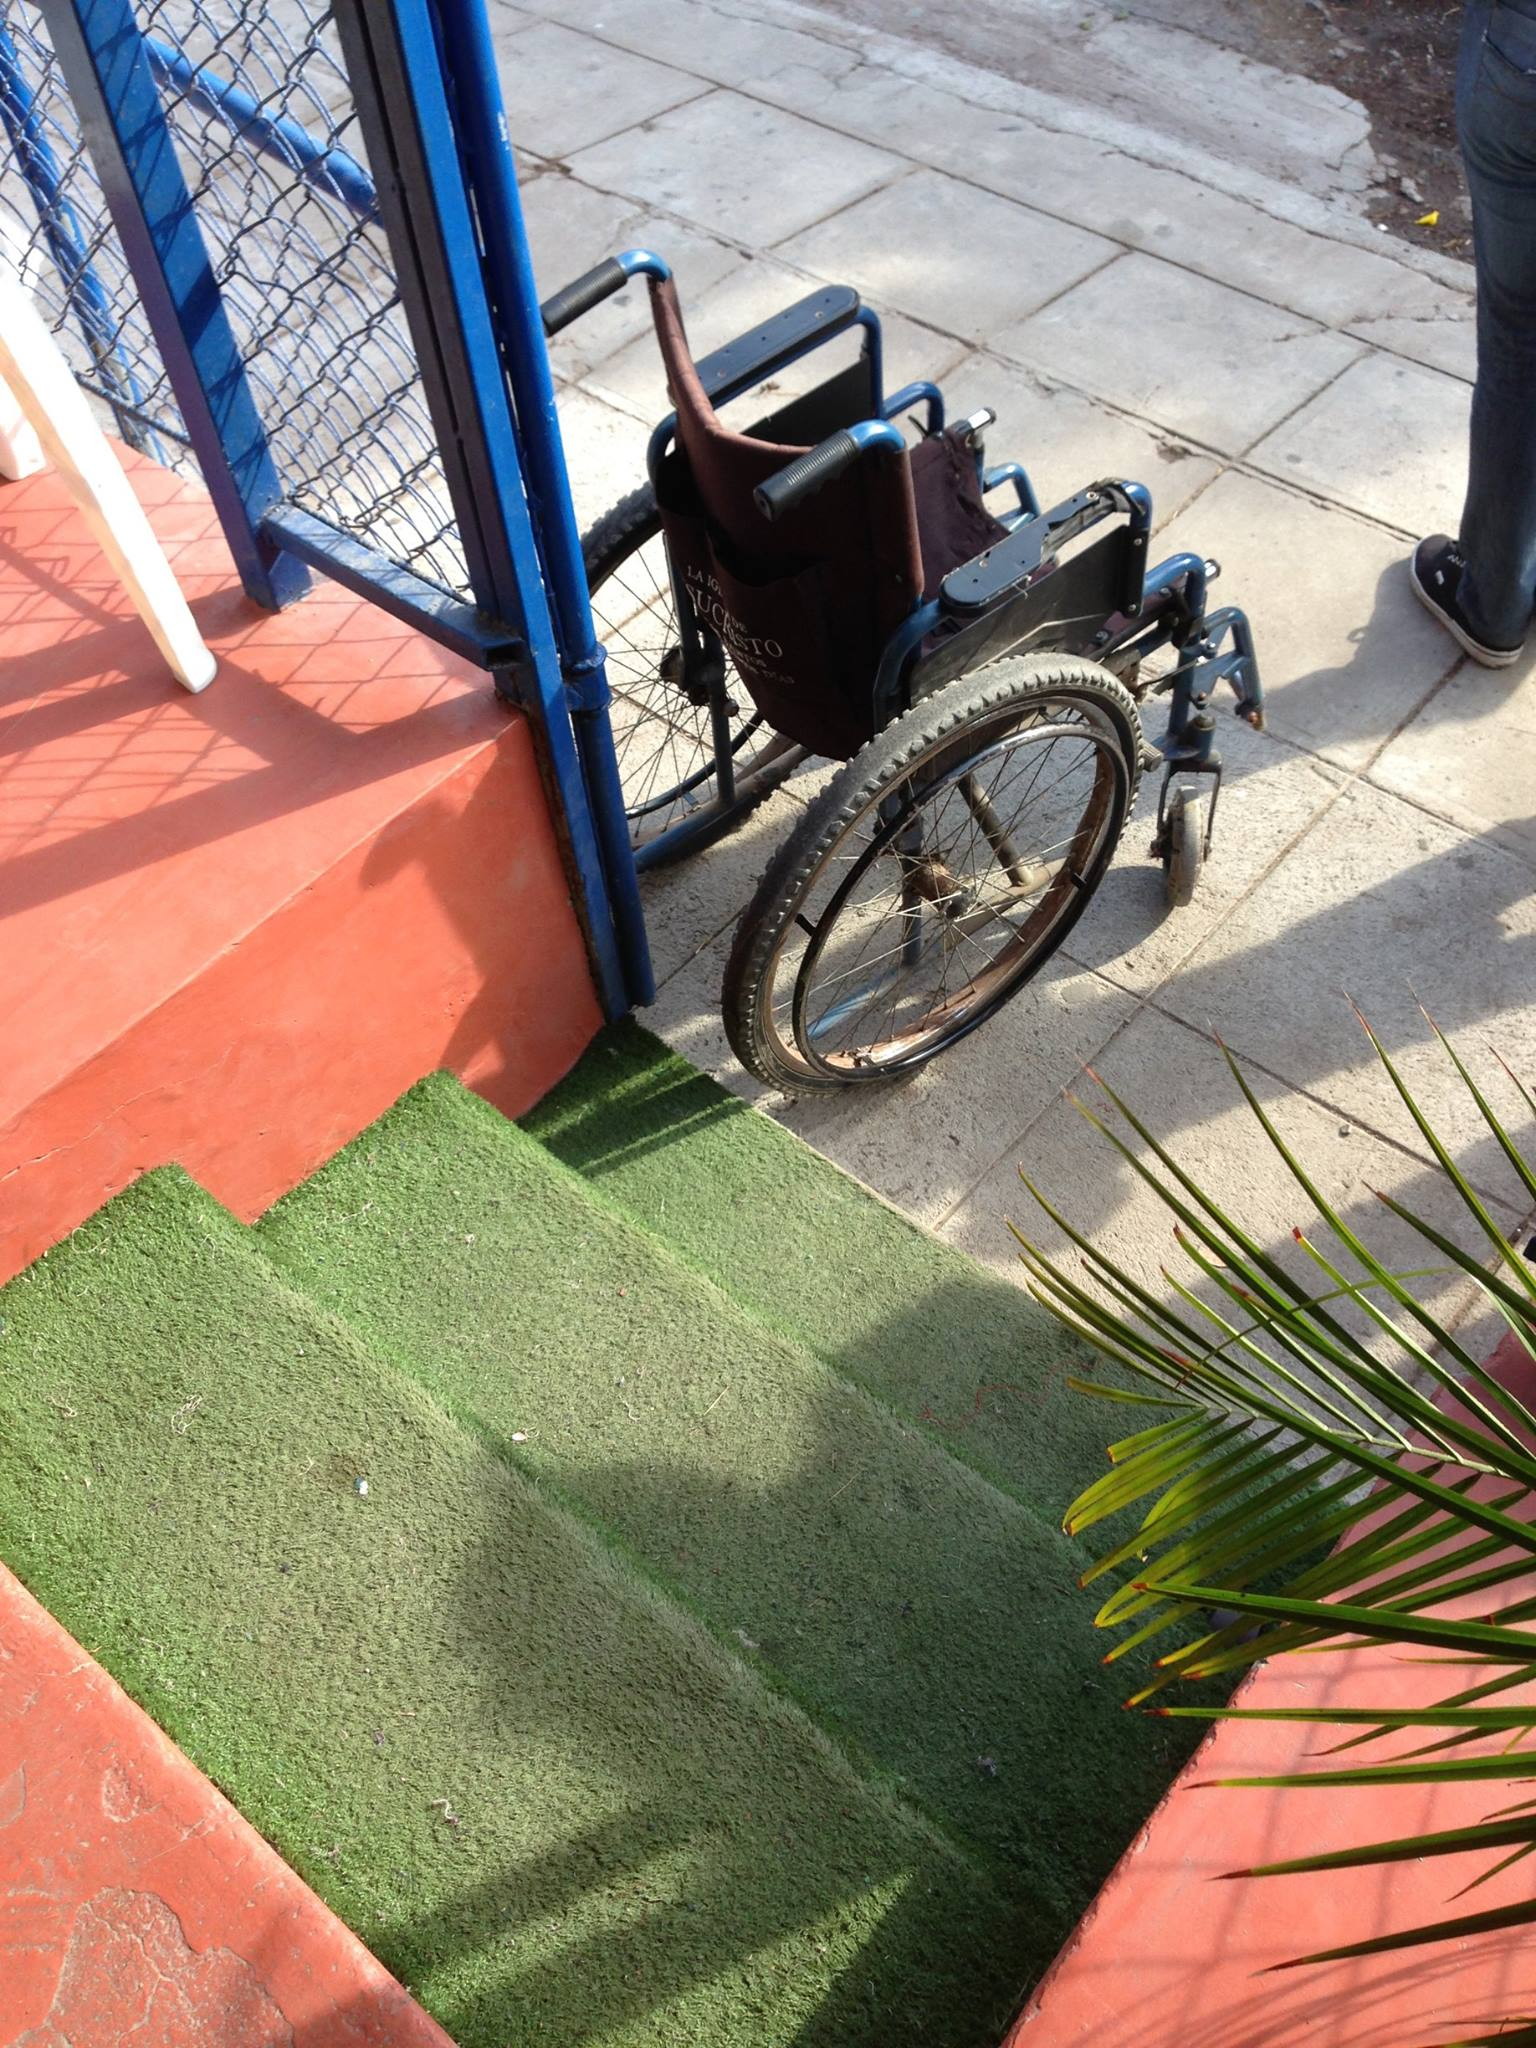 Luis' lonely wheelchair.